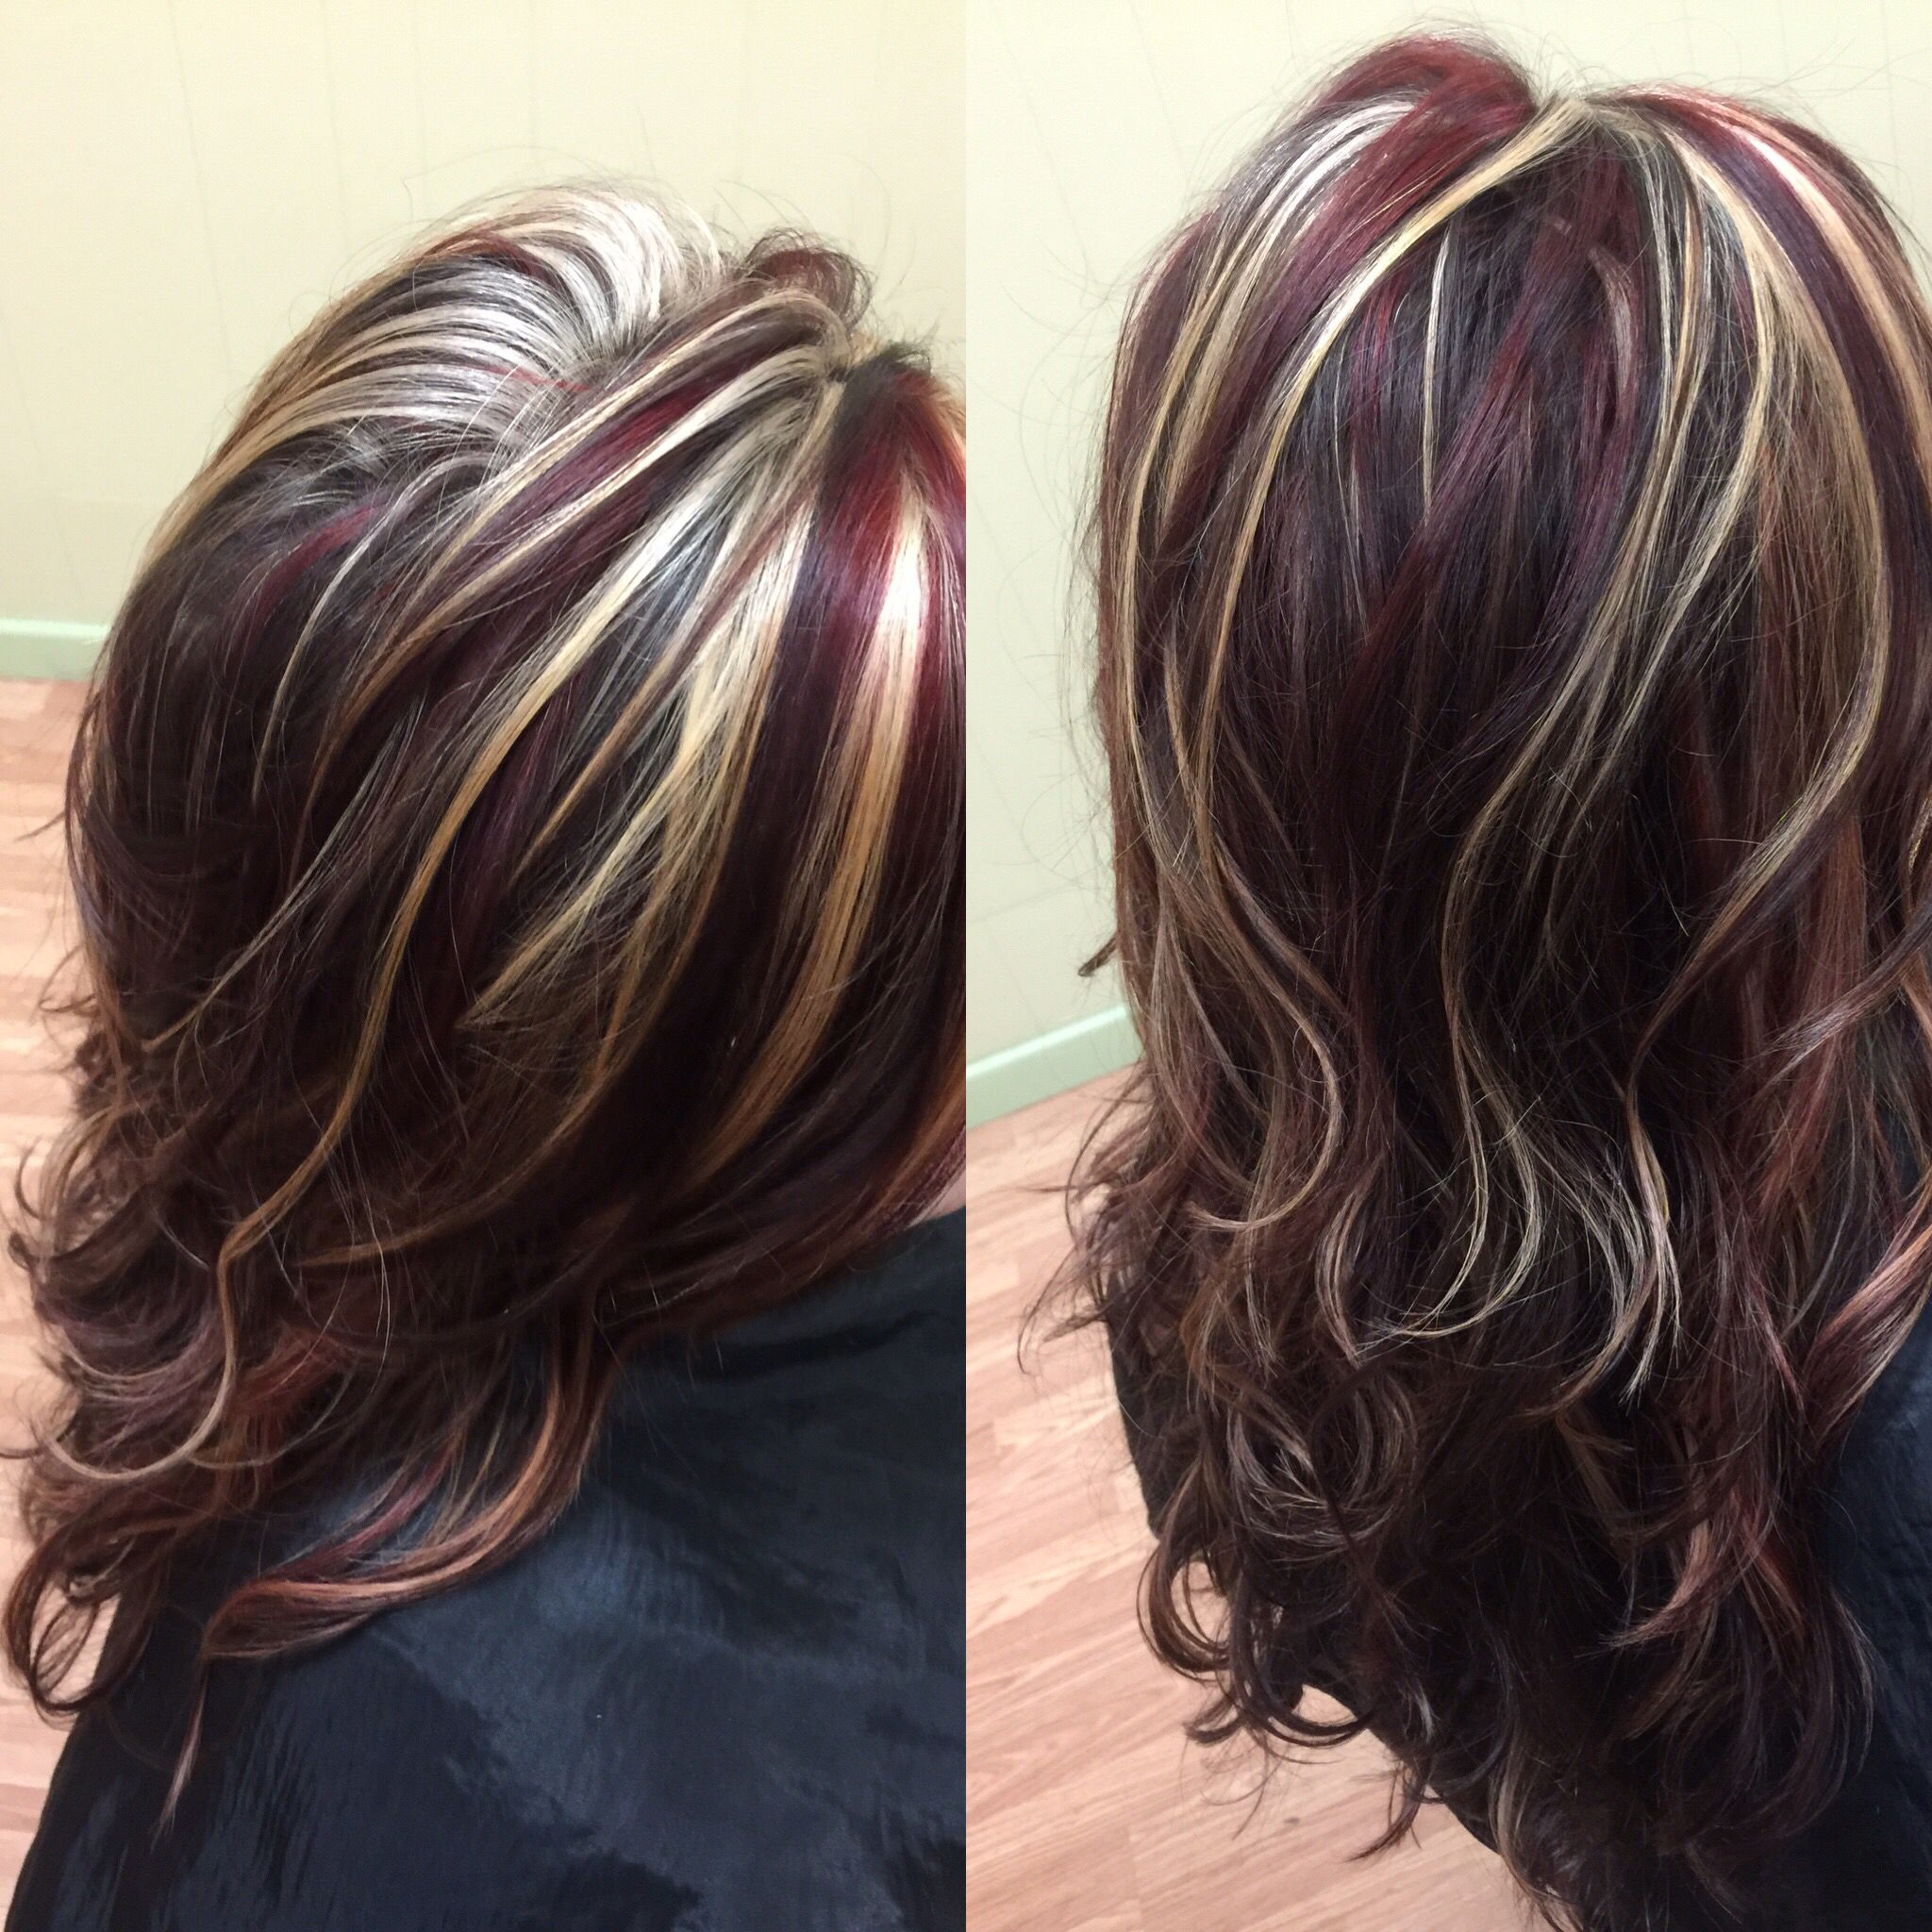 Red Violet With Some Blonde Highlights Hair By Francesca